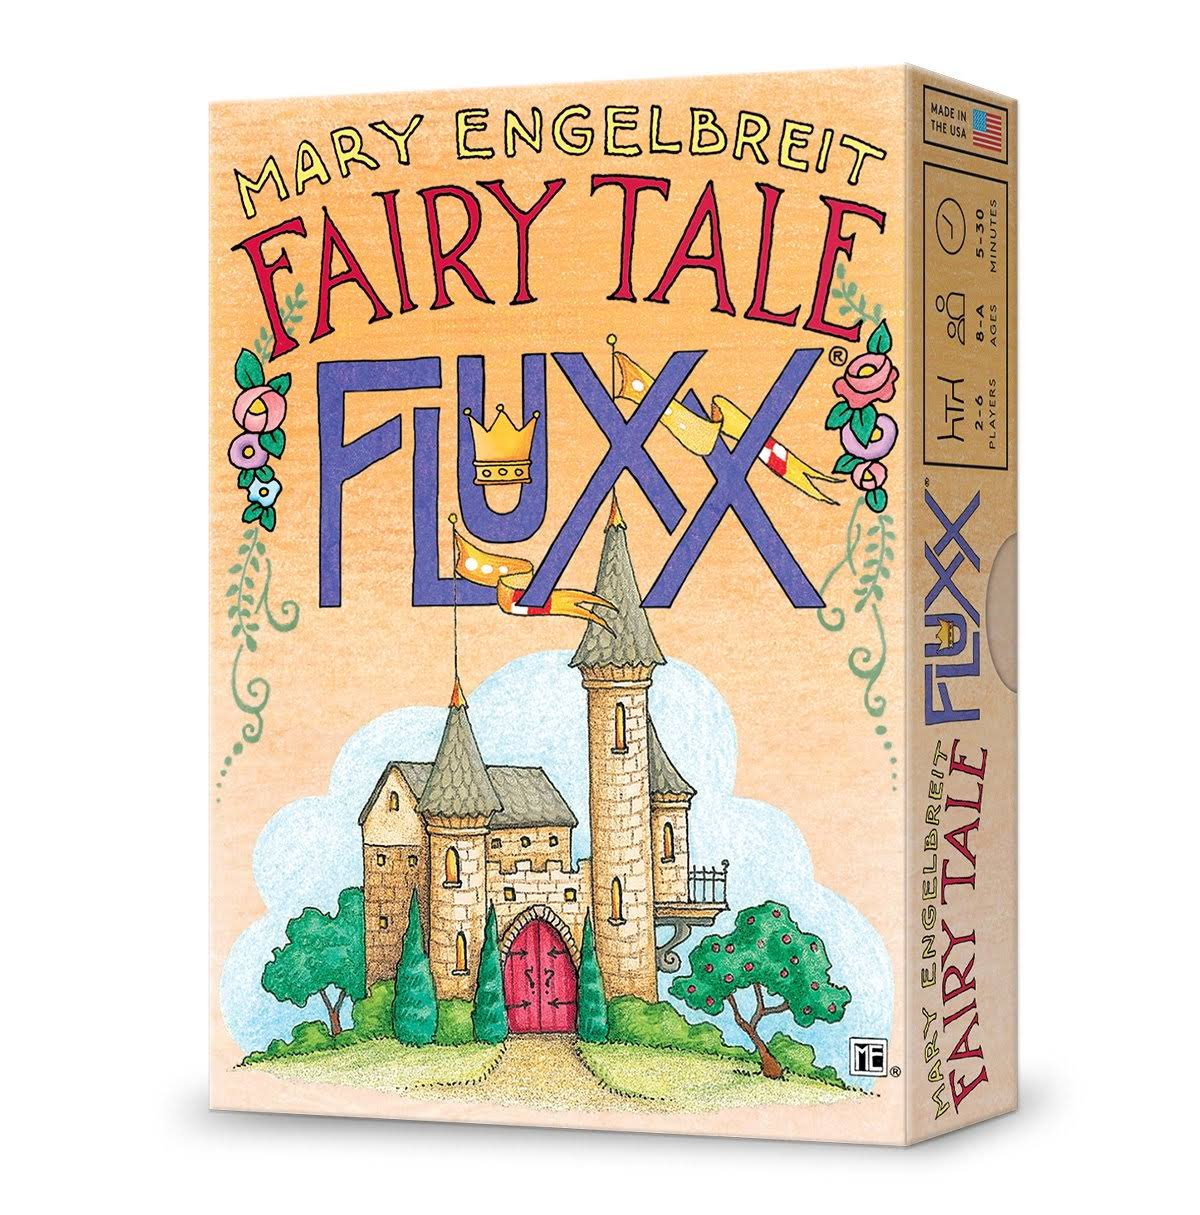 Fairy Tale Fluxx Card Game